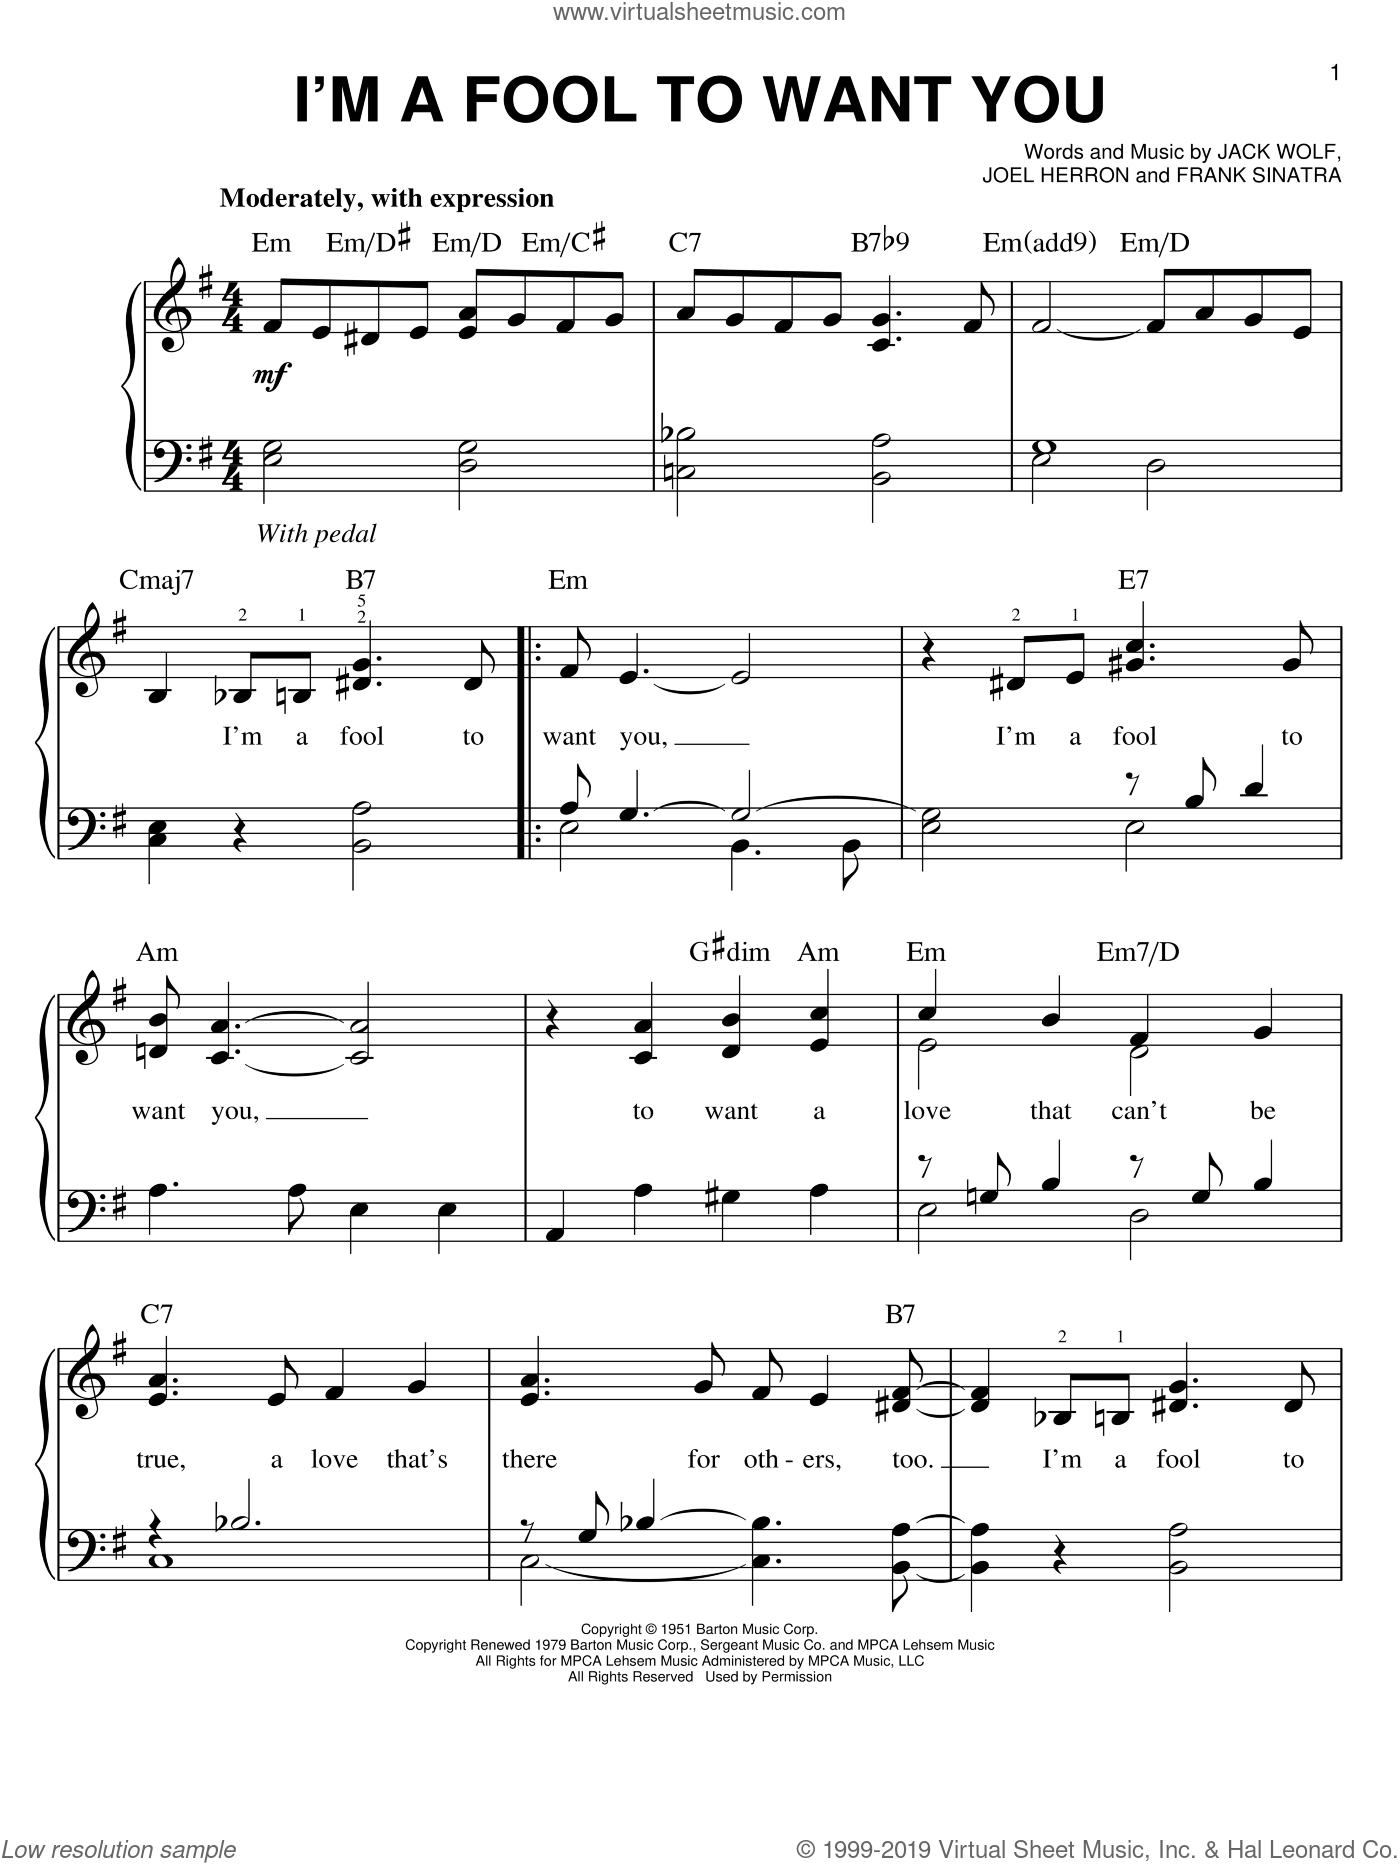 I'm A Fool To Want You sheet music for piano solo (chords) by Joel Herron